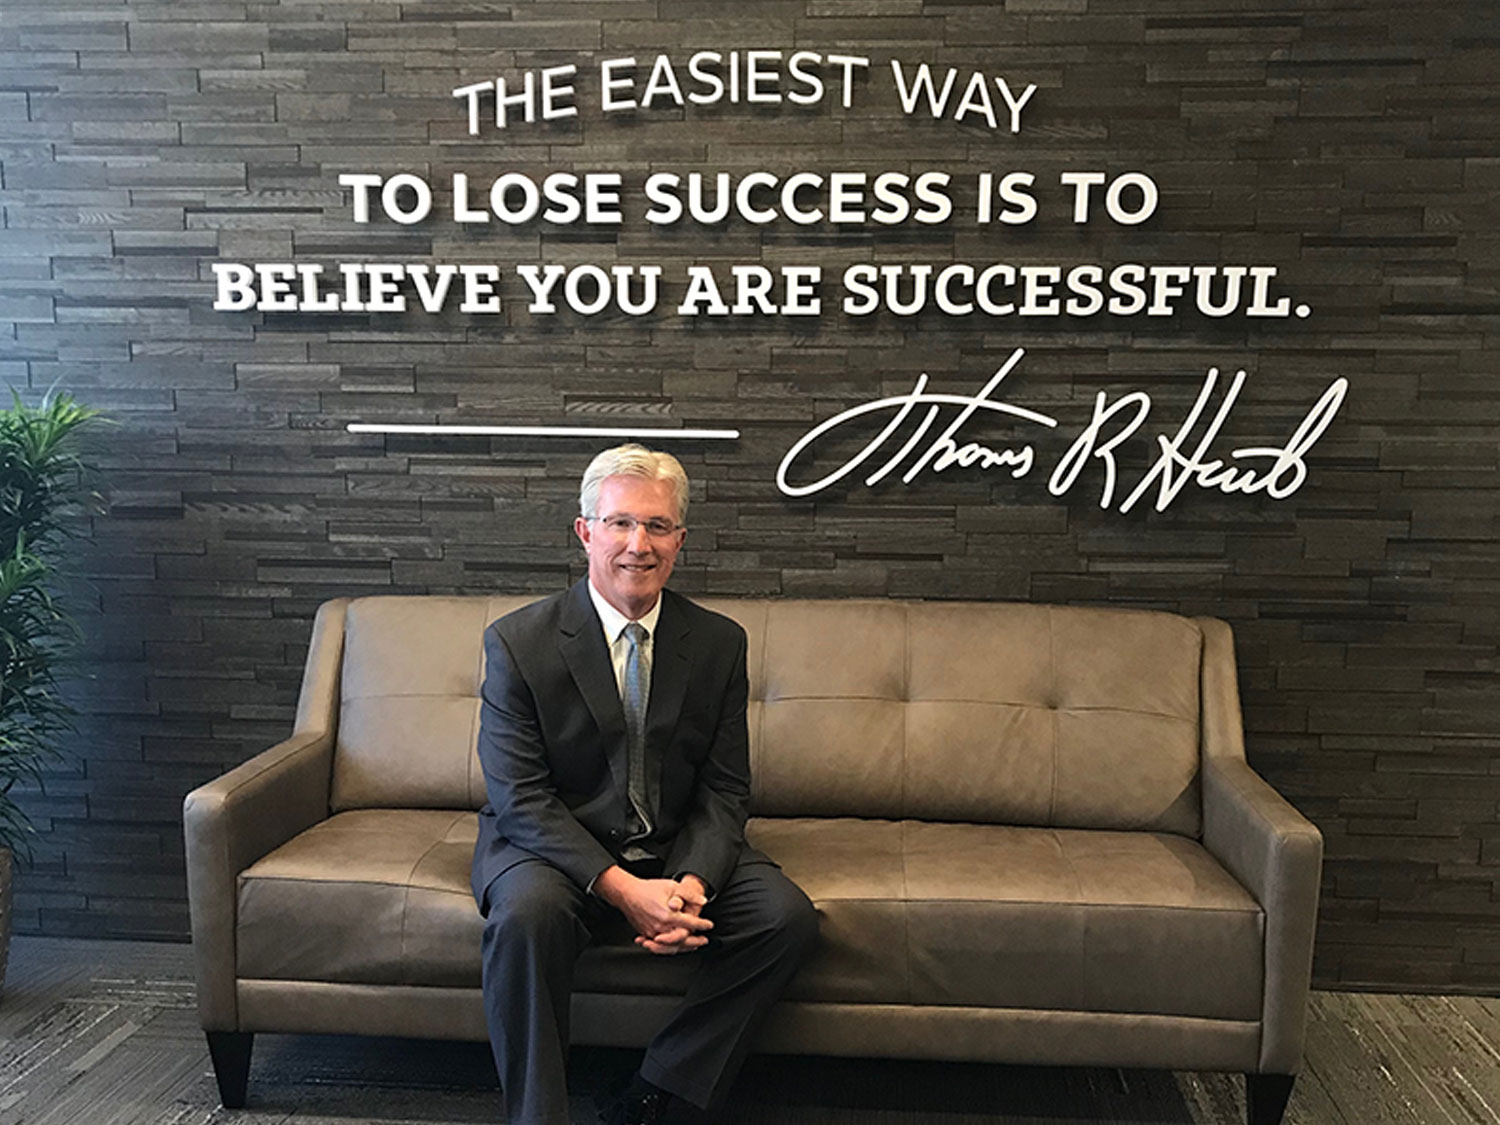 Hart Corporate Office Motivational Acrylic Wall Display